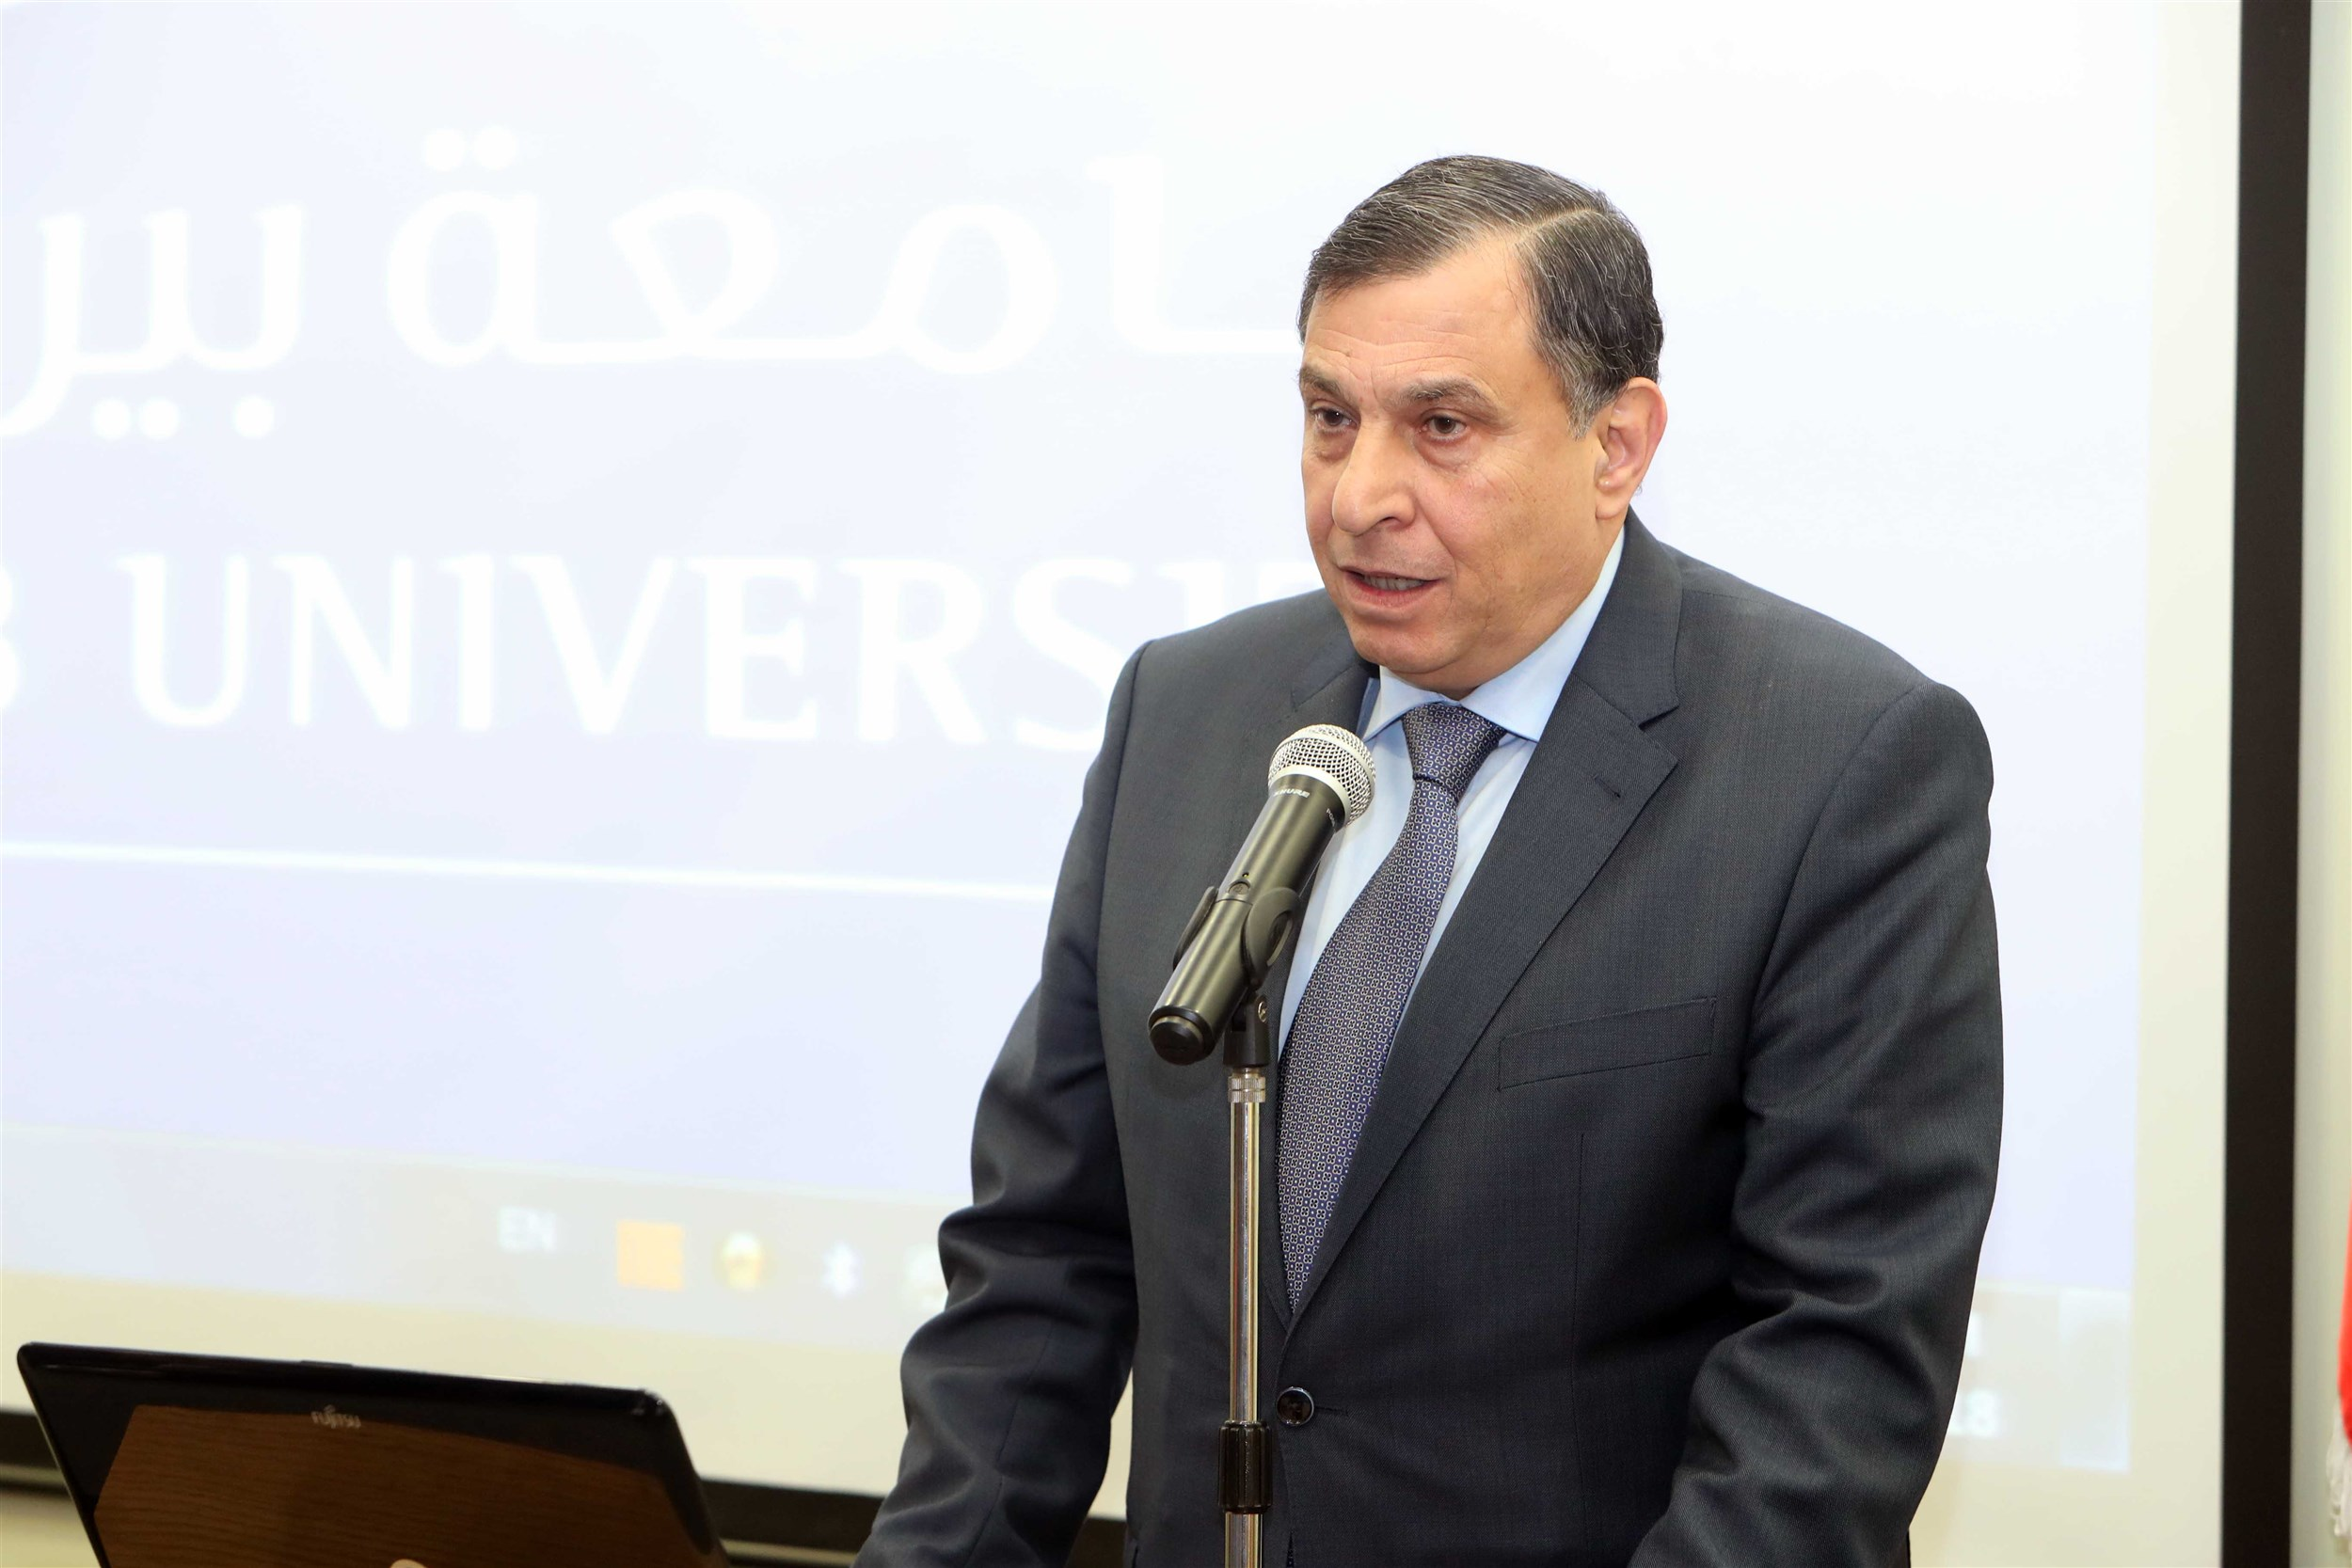 president of the beirut arab university dr. amro al adawi delivering his speech.